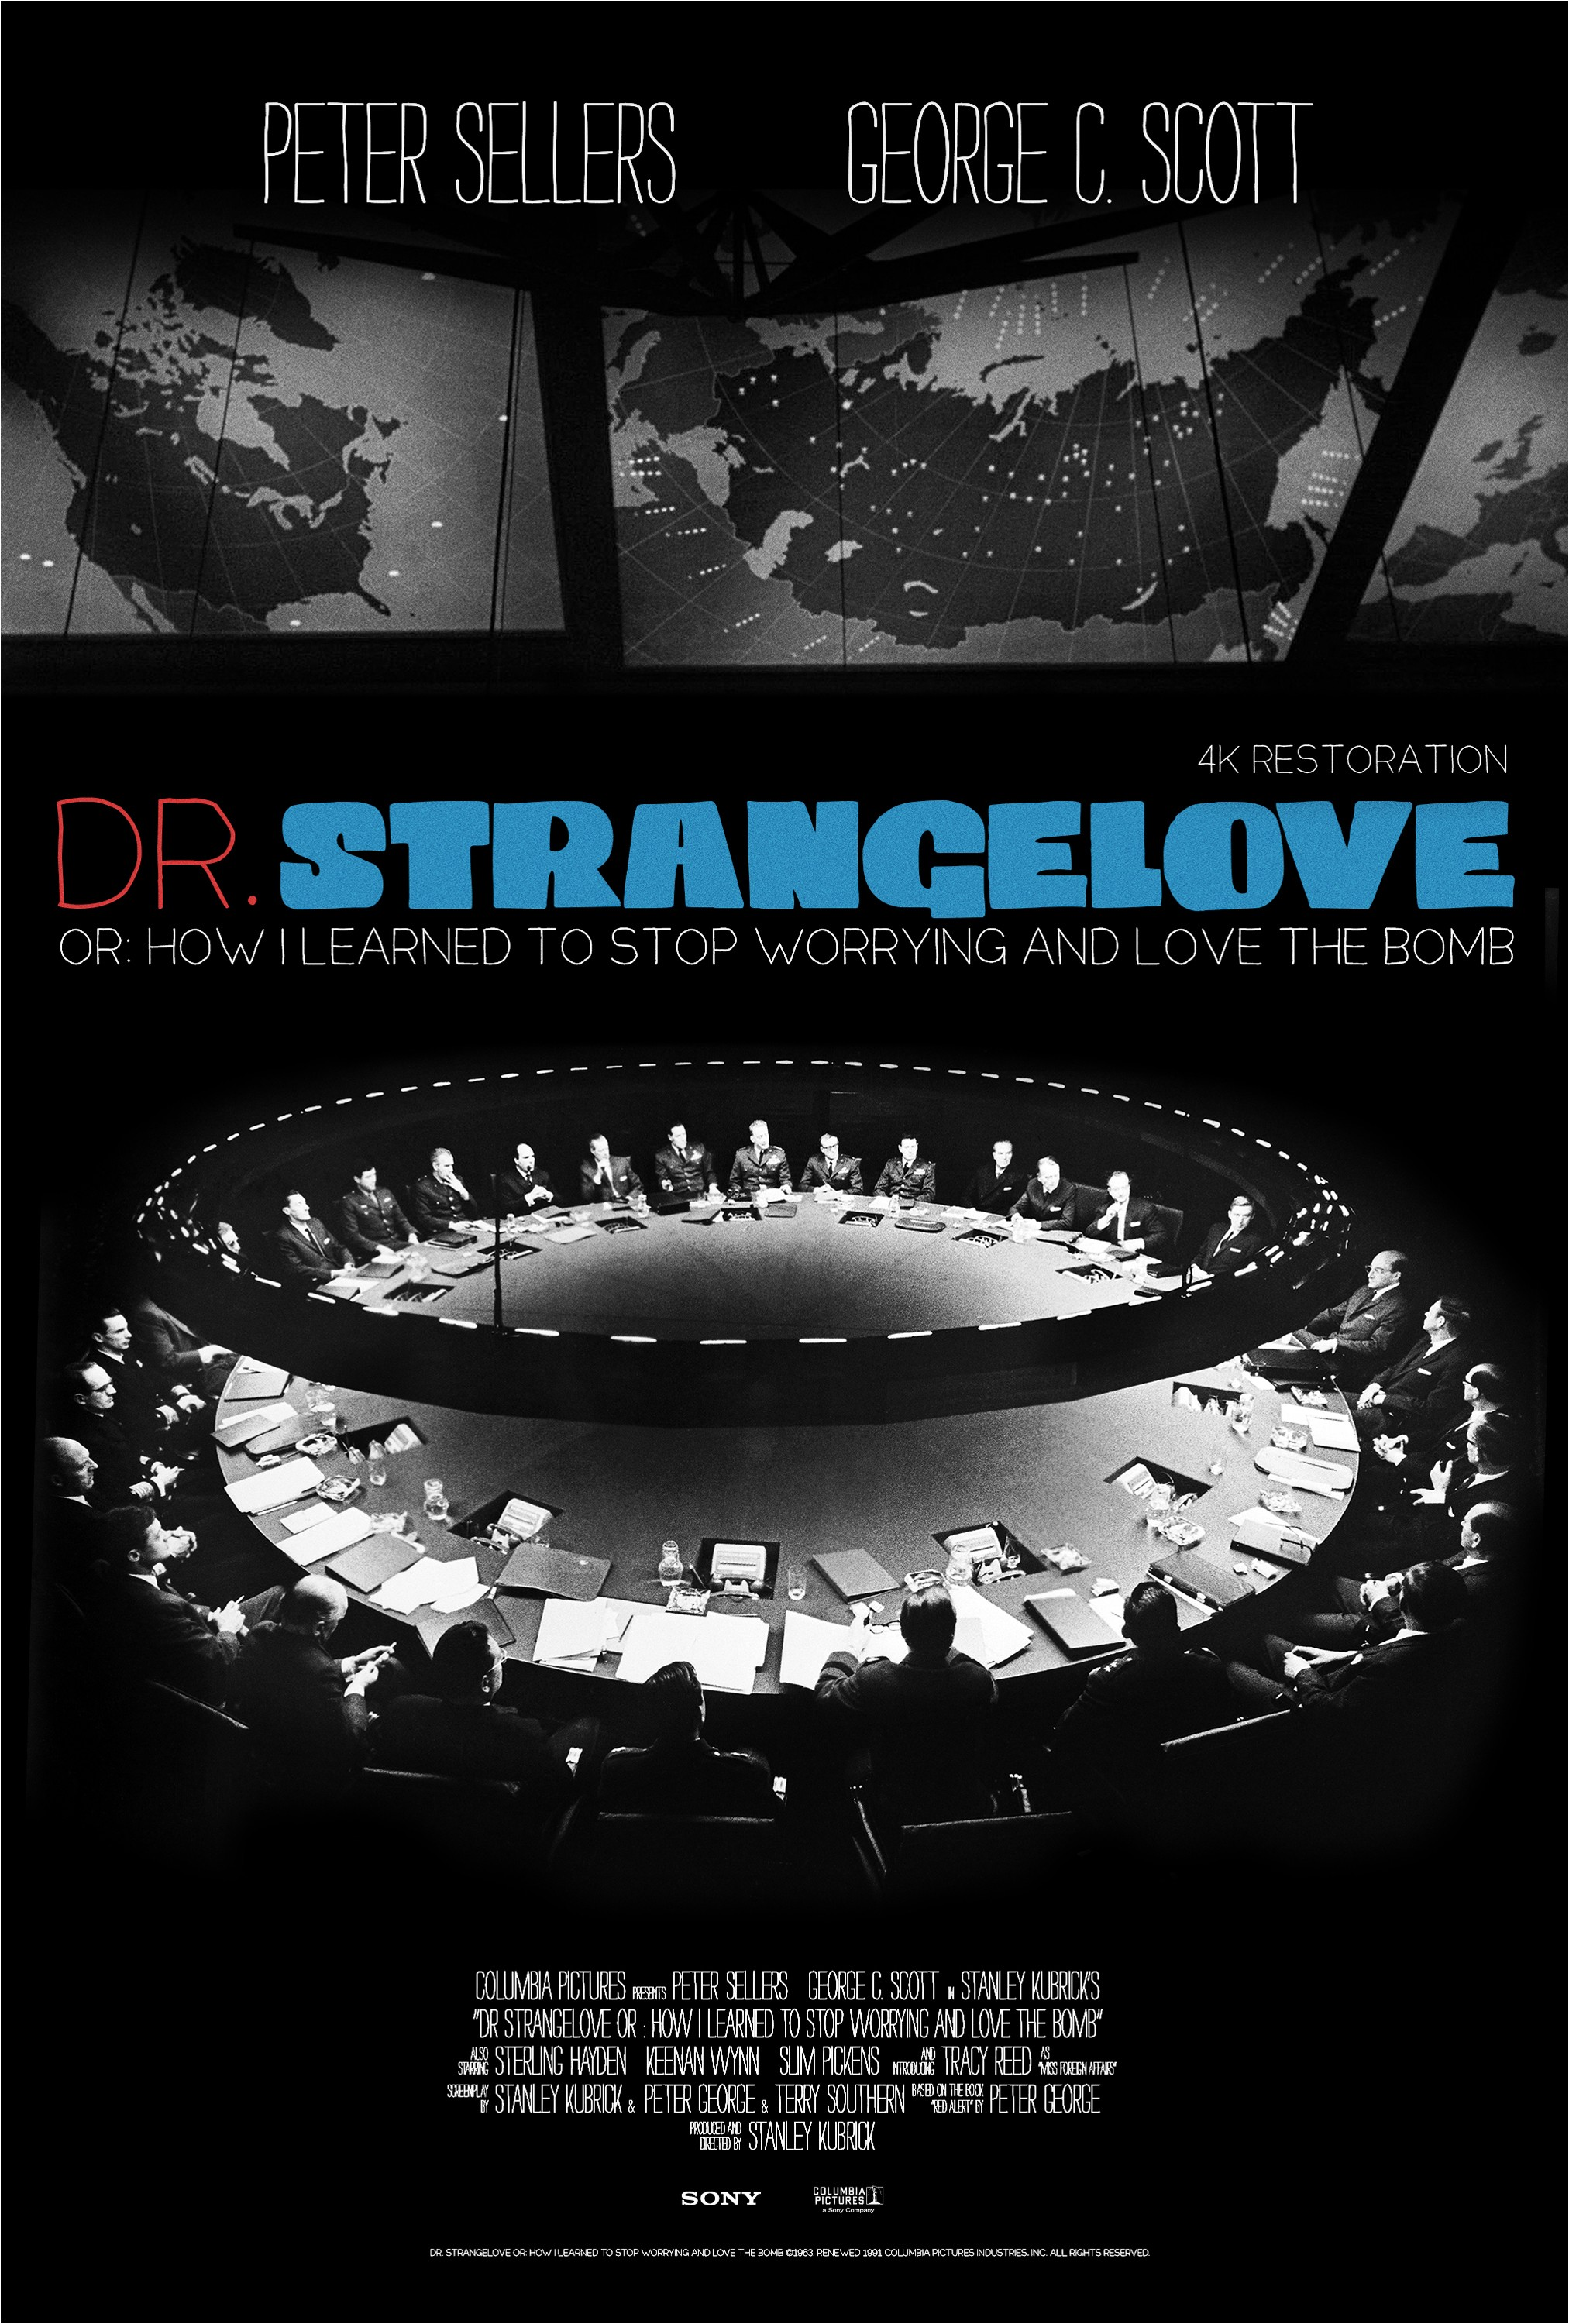 DR. STRANGELOVE OR: HOW I LEARNED TO STOP WORRYING AND LOVE THE BOMB [Re-Release]